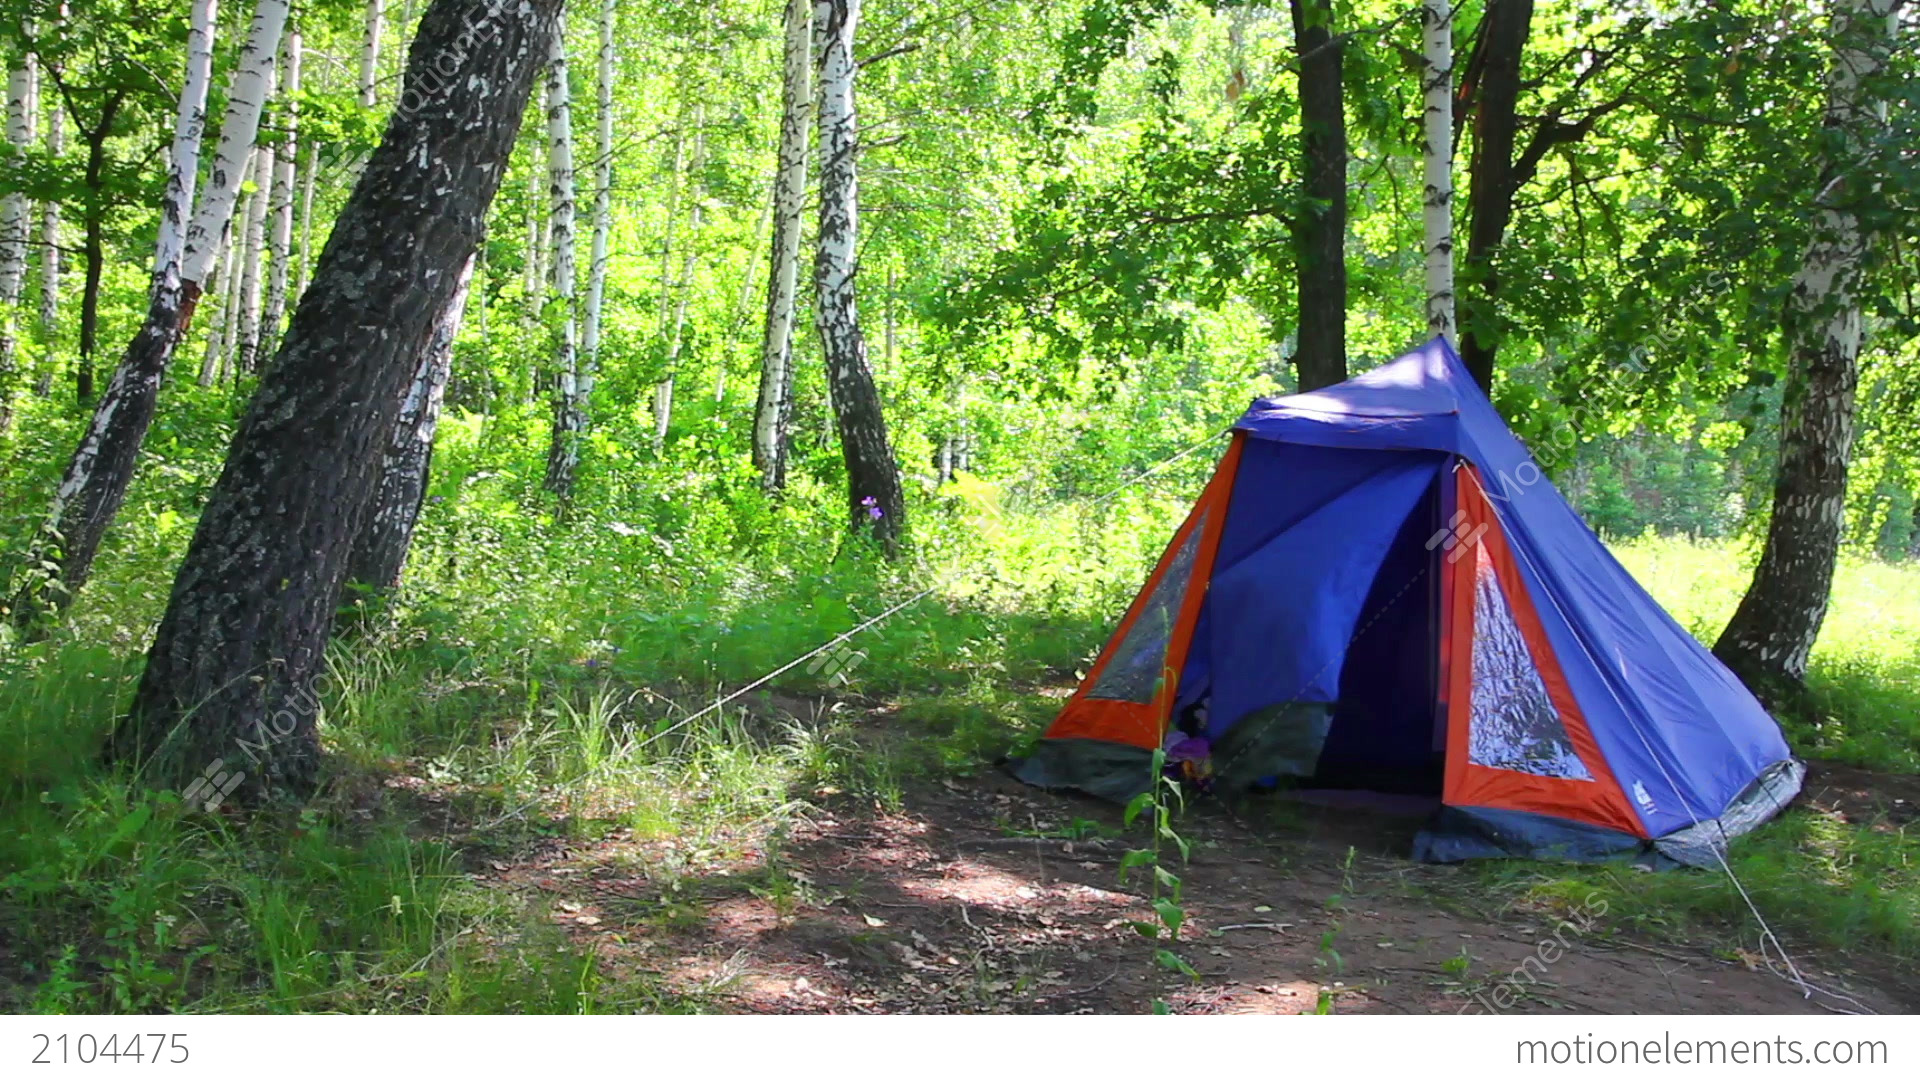 c&ing tent in summer birch forest Stock Video Footage & Camping Tent In Summer Birch Forest Stock video footage | 2104475